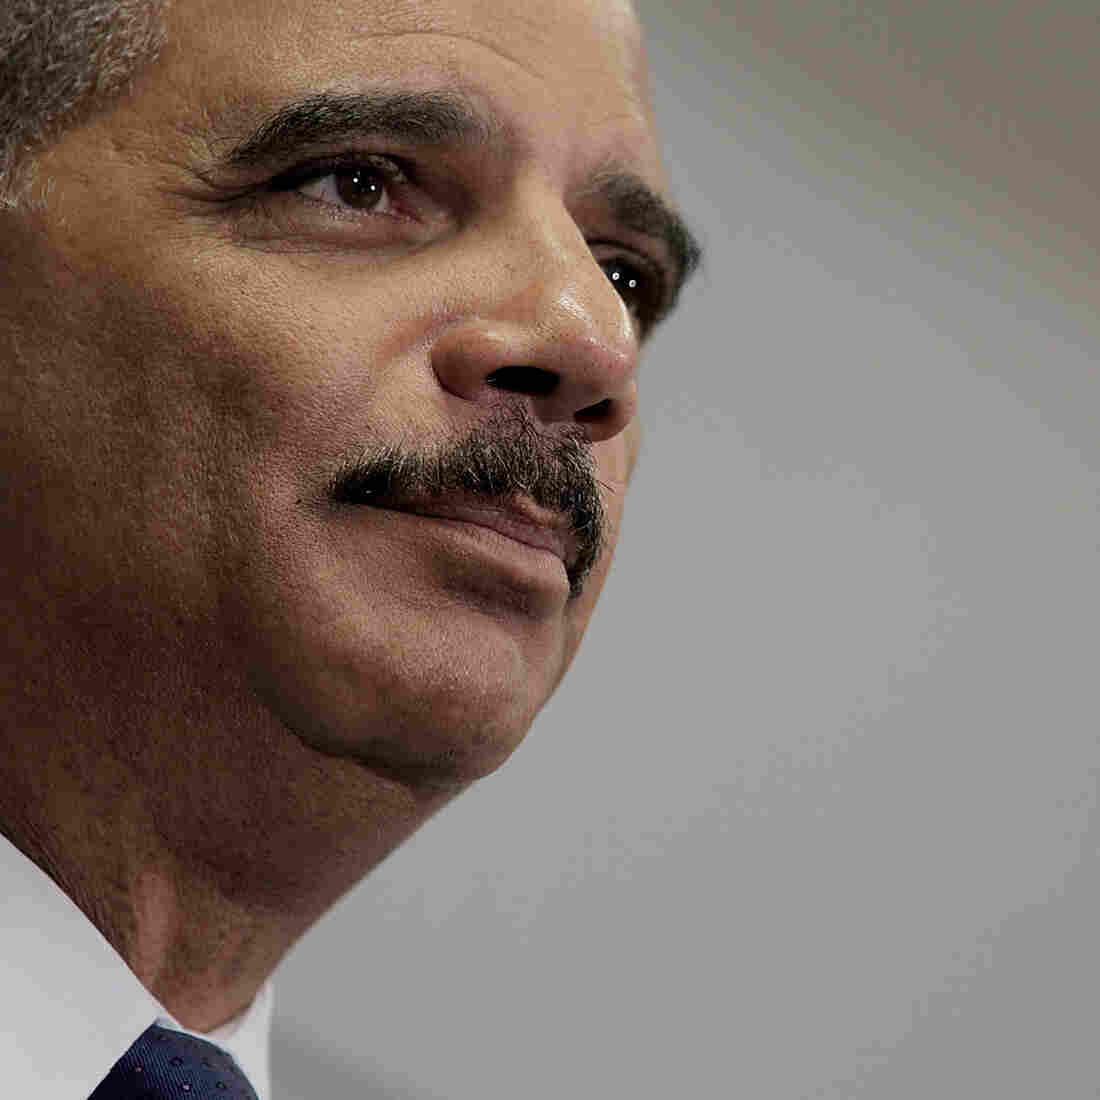 With The End In Sight, Holder Reflects On His Legacy